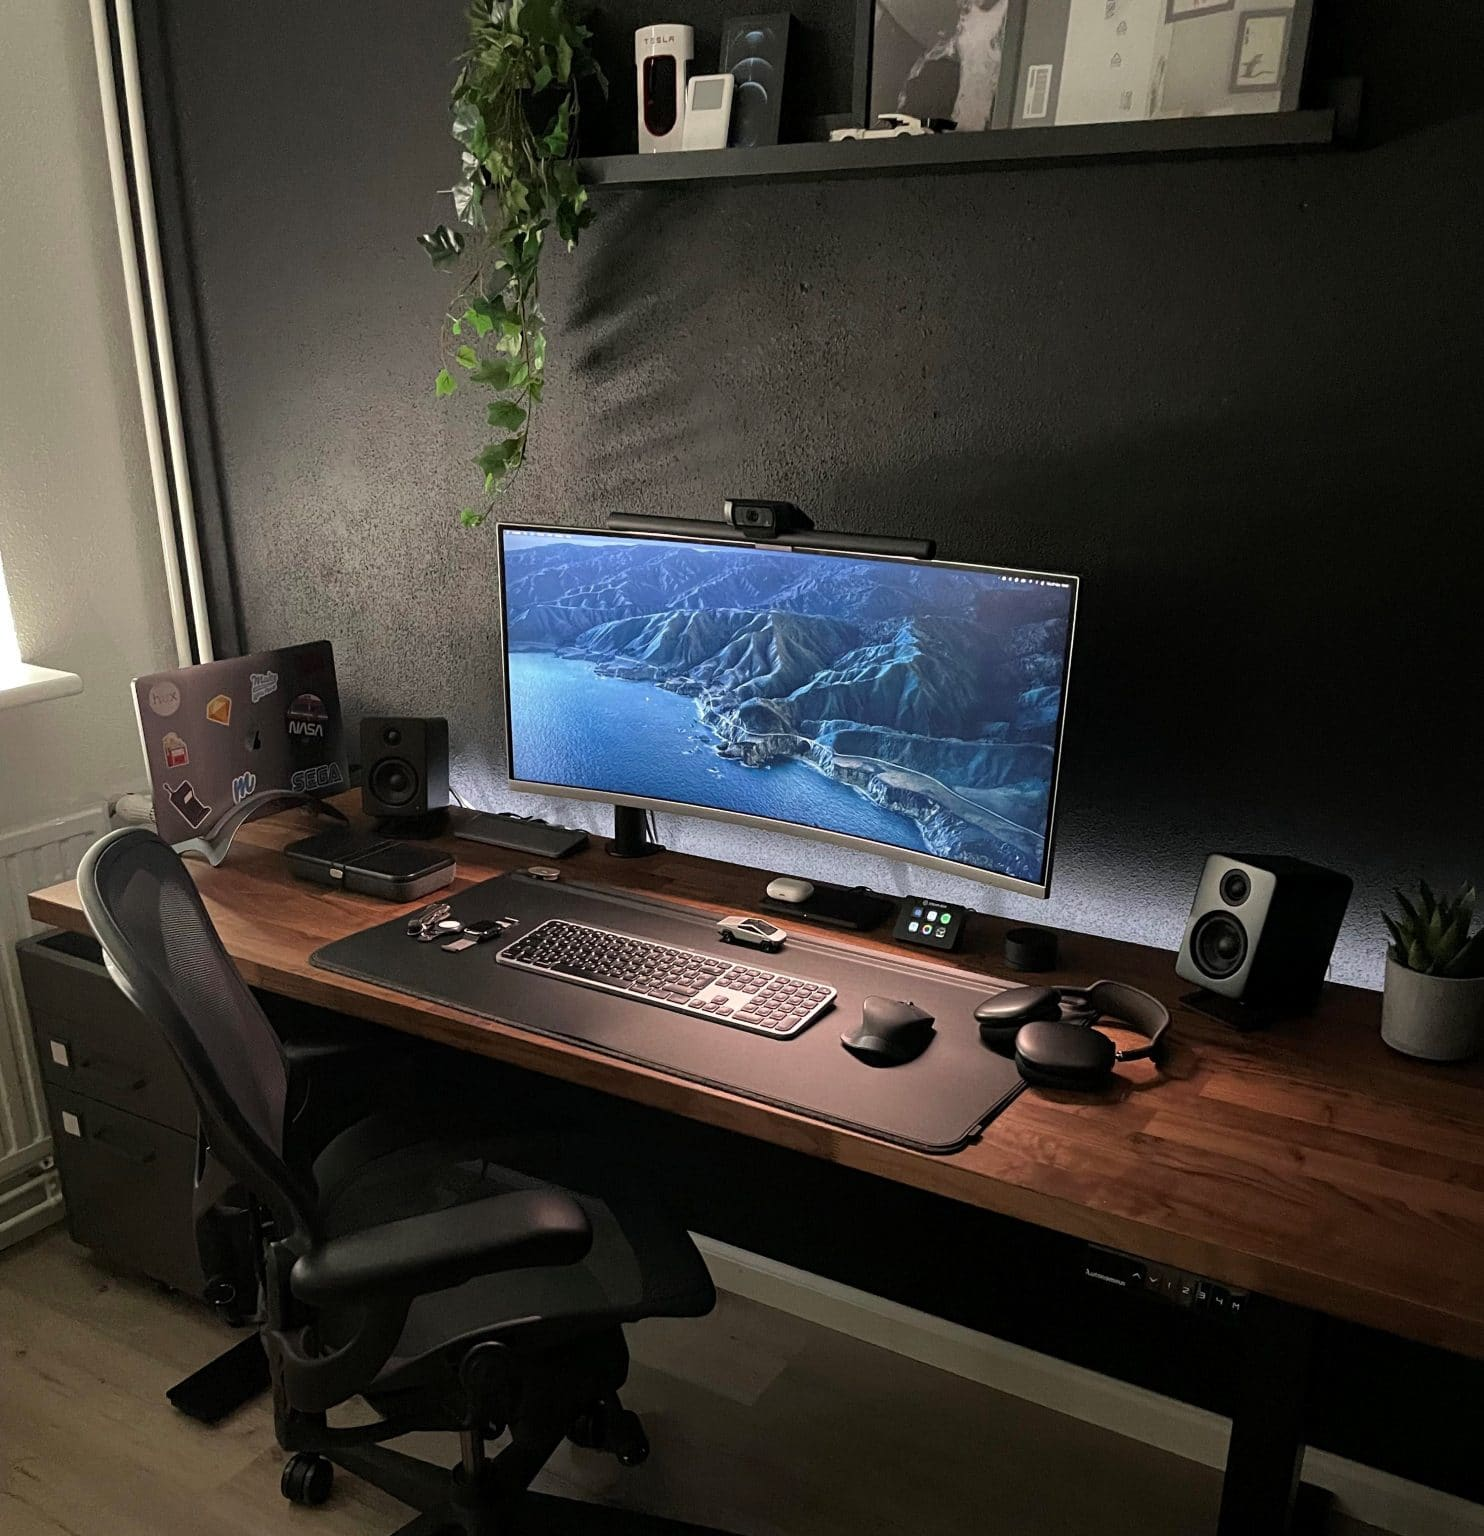 A new house calls for a first-time home office with an ultrawide monitor and plenty of toys.